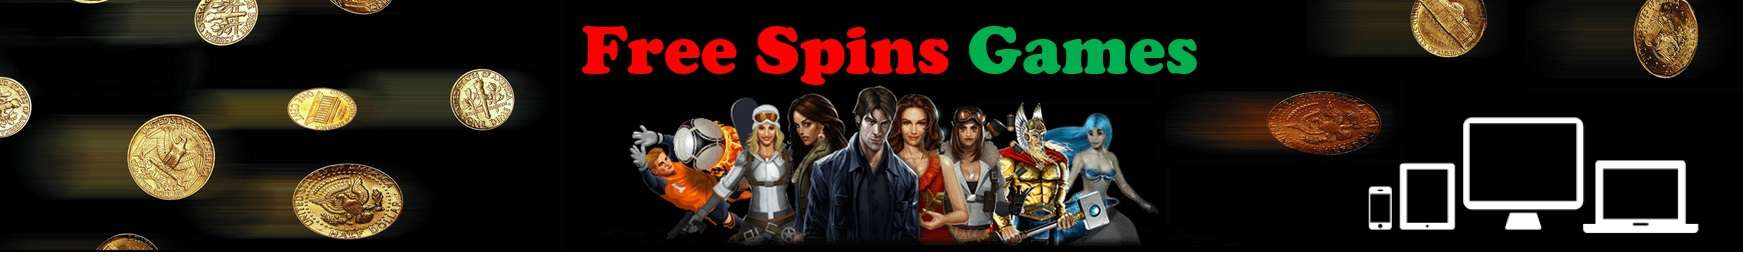 Free Spins Games